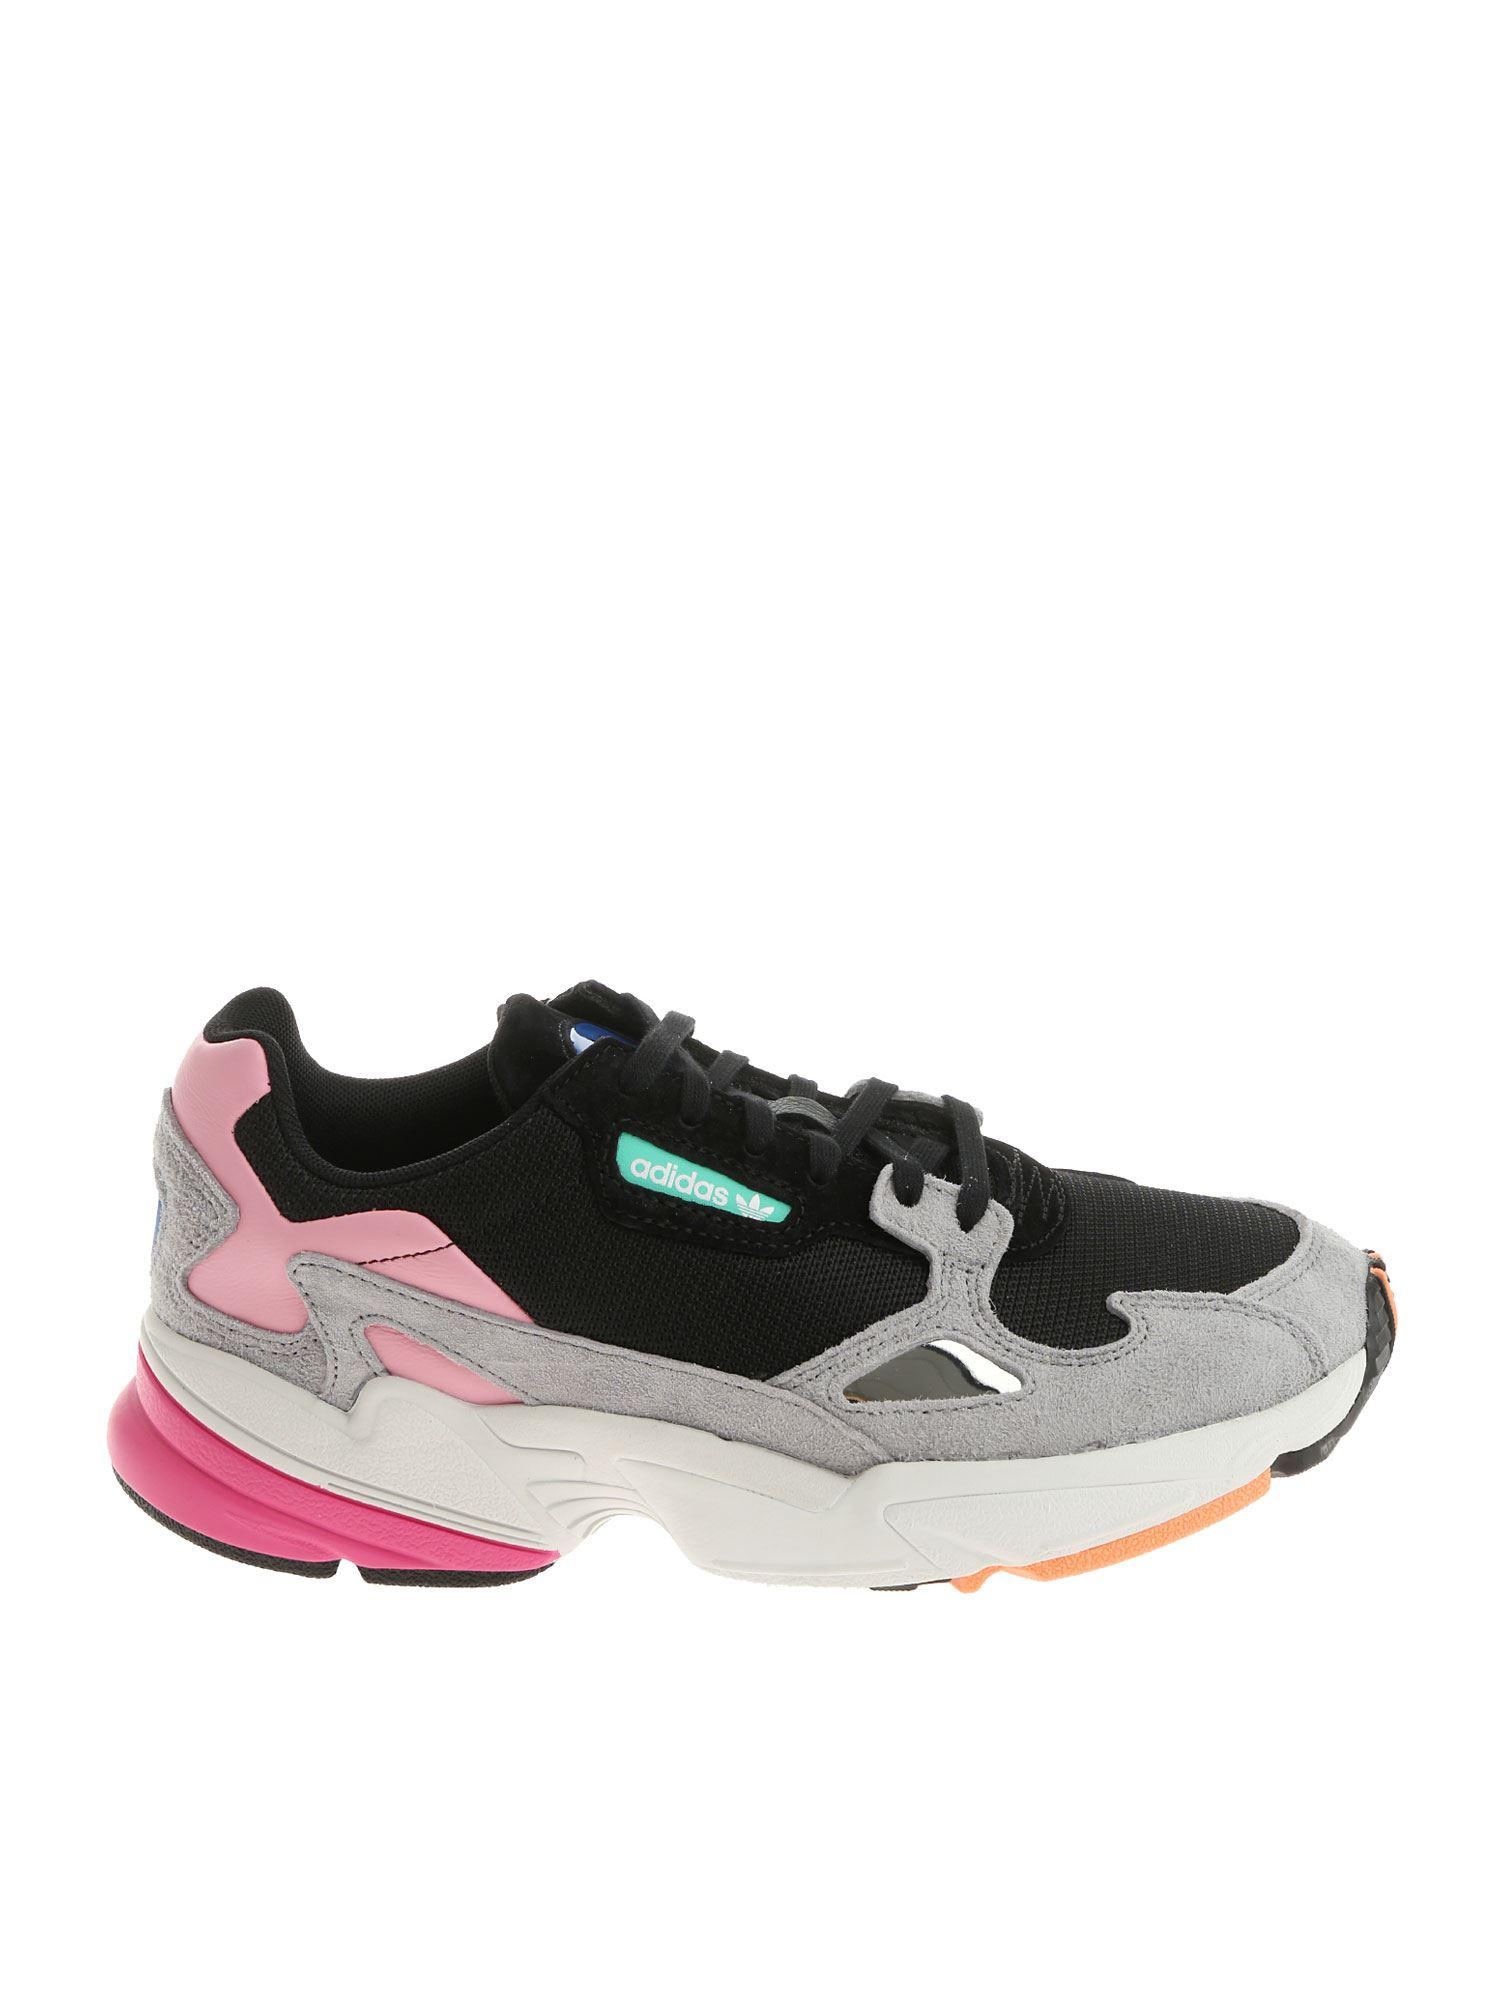 promo code b526f 70cae Lyst - adidas Originals Black Pink And Grey Falcon W Sneakers in Black adidas  sneakers black